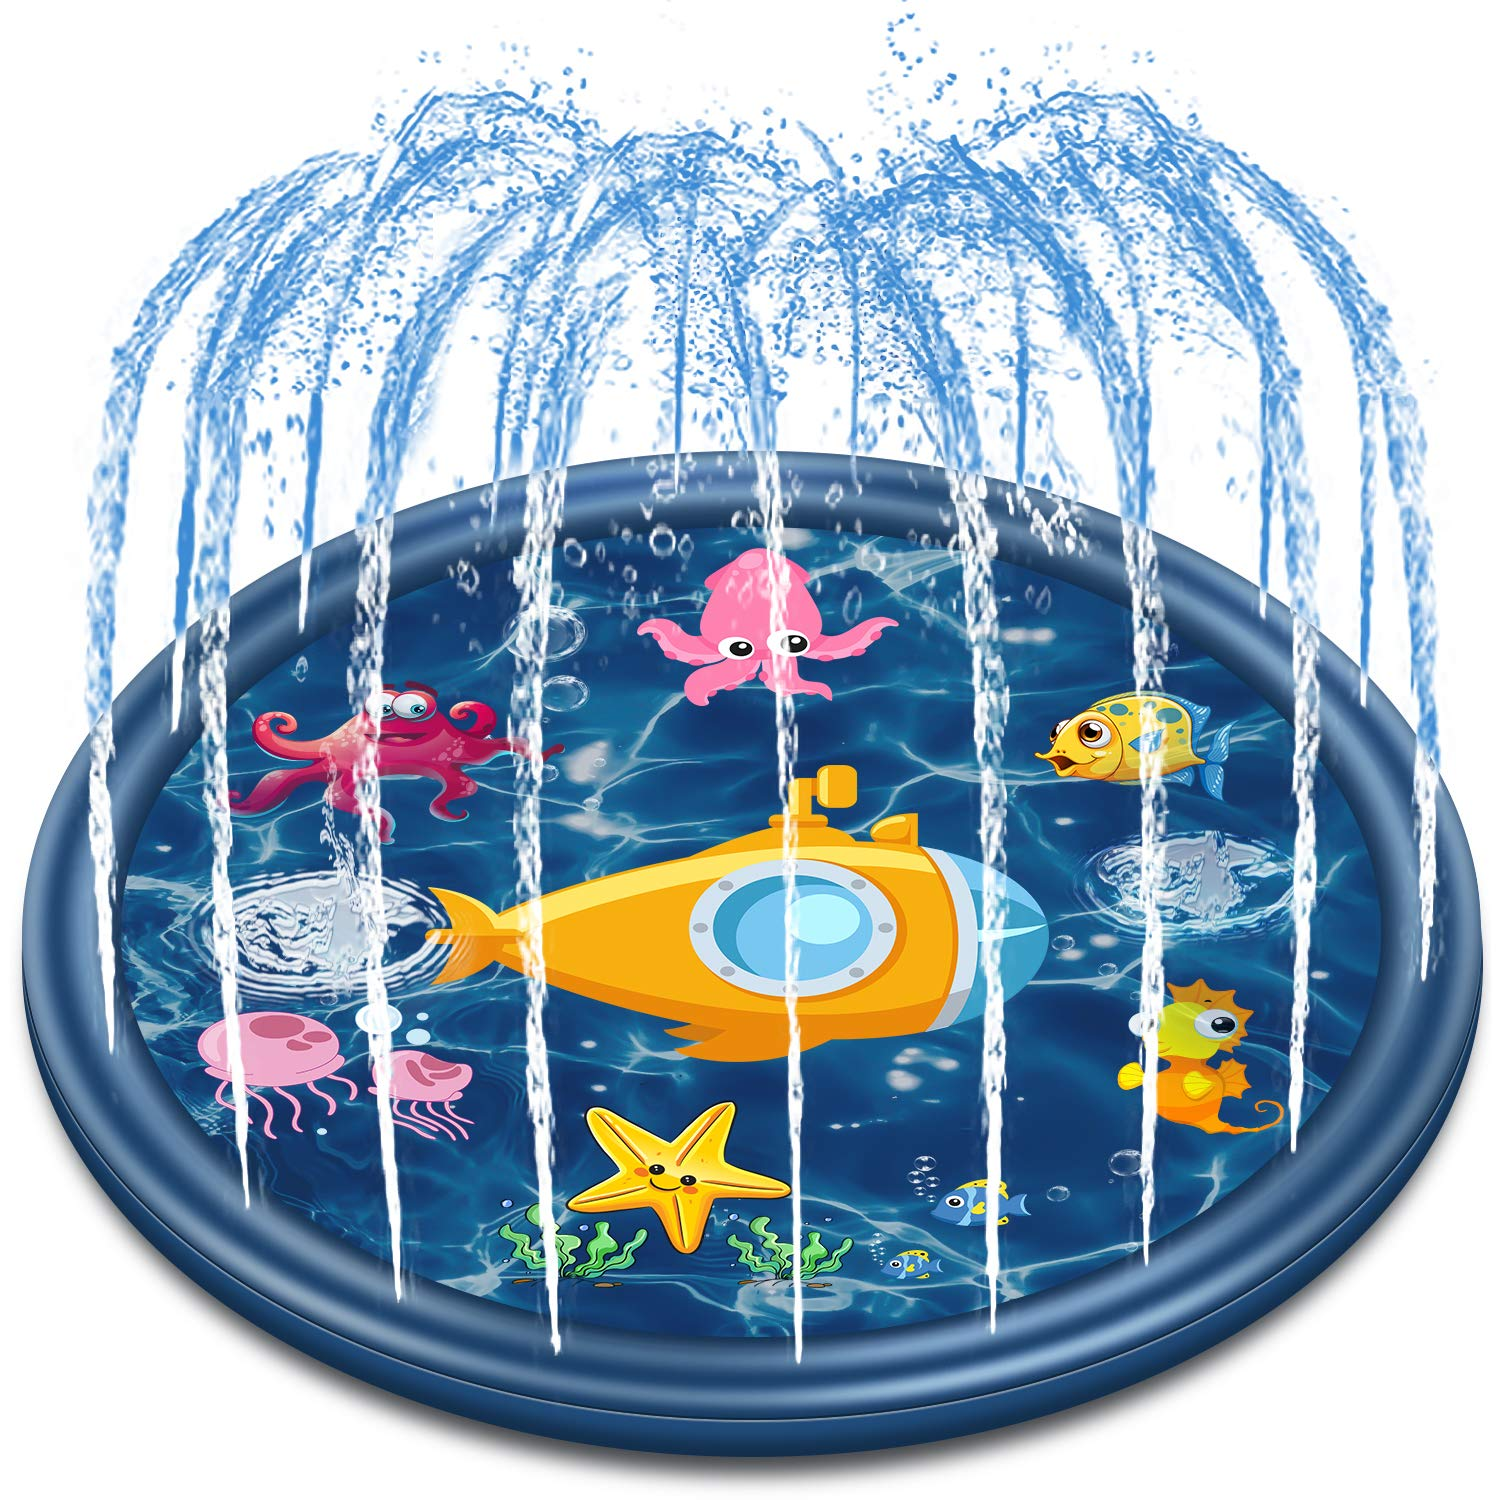 Jozo Outdoor Sprinkler Water Toys for Kids and Toddlers 68'', Kids Summer Splash Pad Toys for 1 2 3 4 5 6 7 8 Year Old Boys and Girls by Jozo